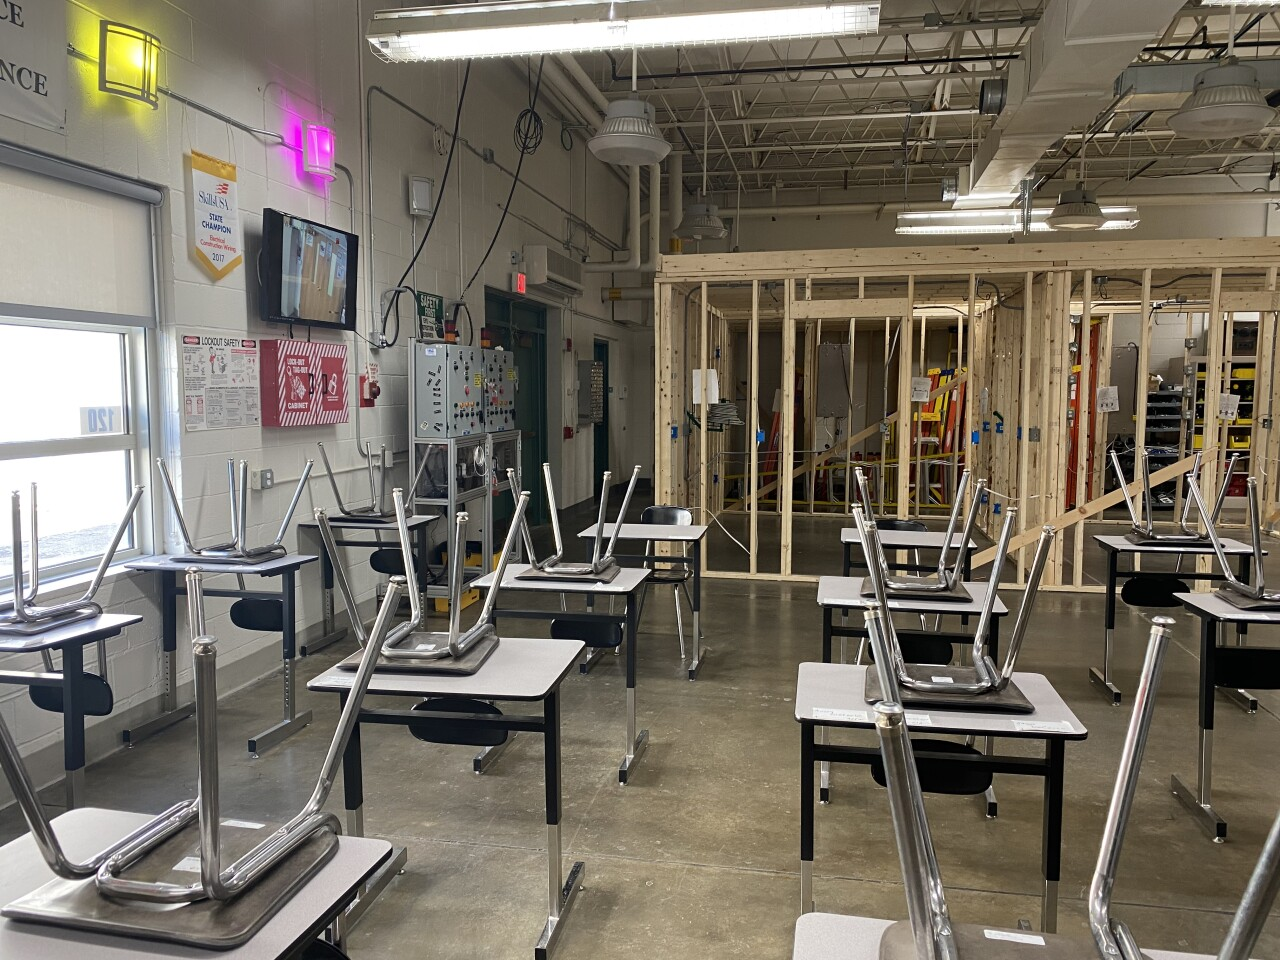 Instructors say it's hard to get girls into Building Trades classes at the Harkness Center